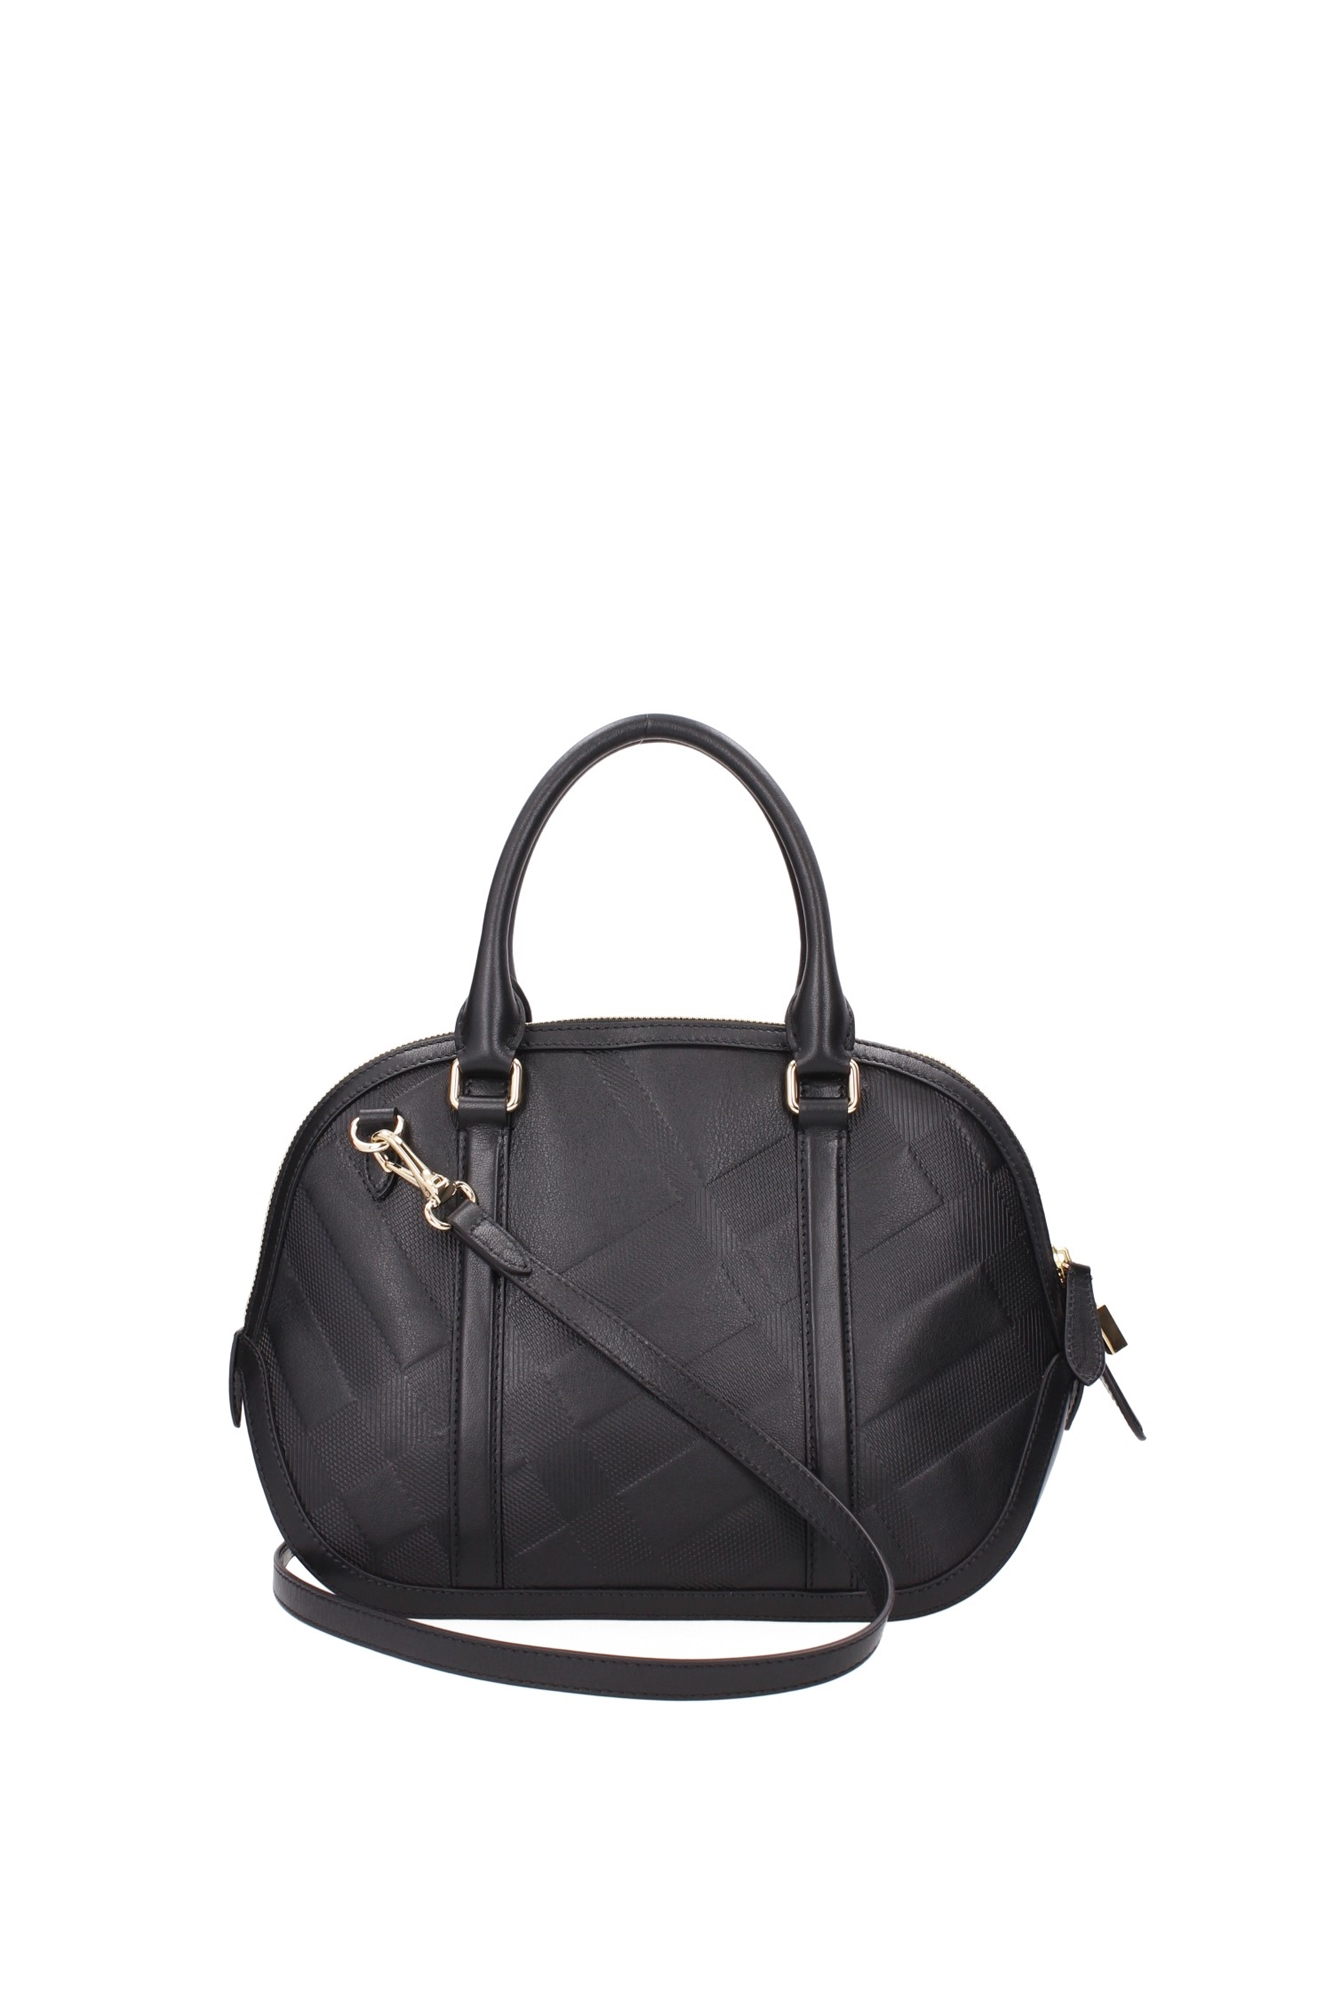 Hand Bags Burberry Women Leather Black 3949802 | eBay